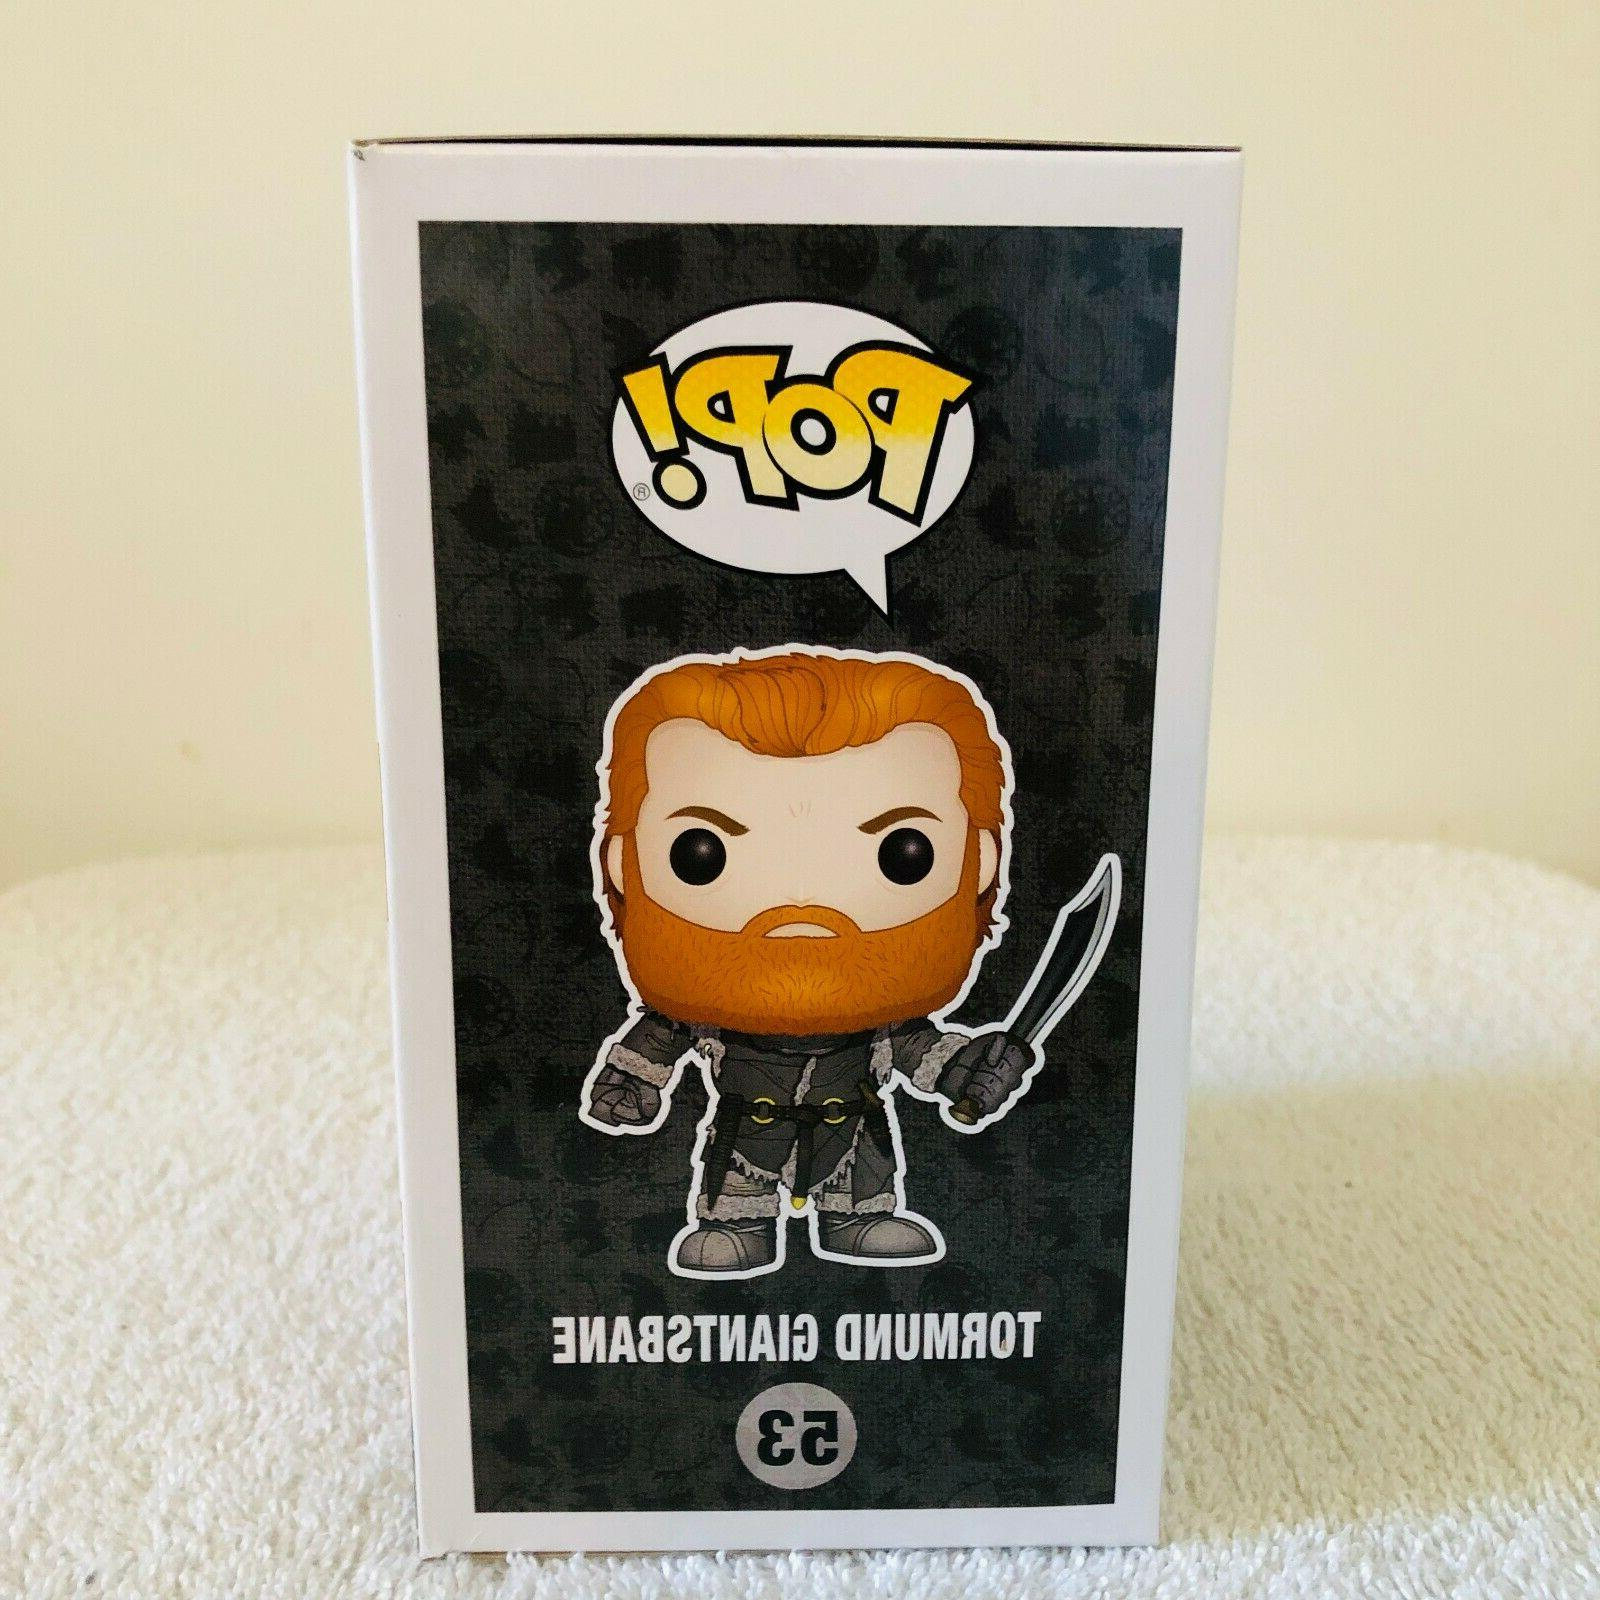 Funko Pop Thrones Tormund Giantsbane #53